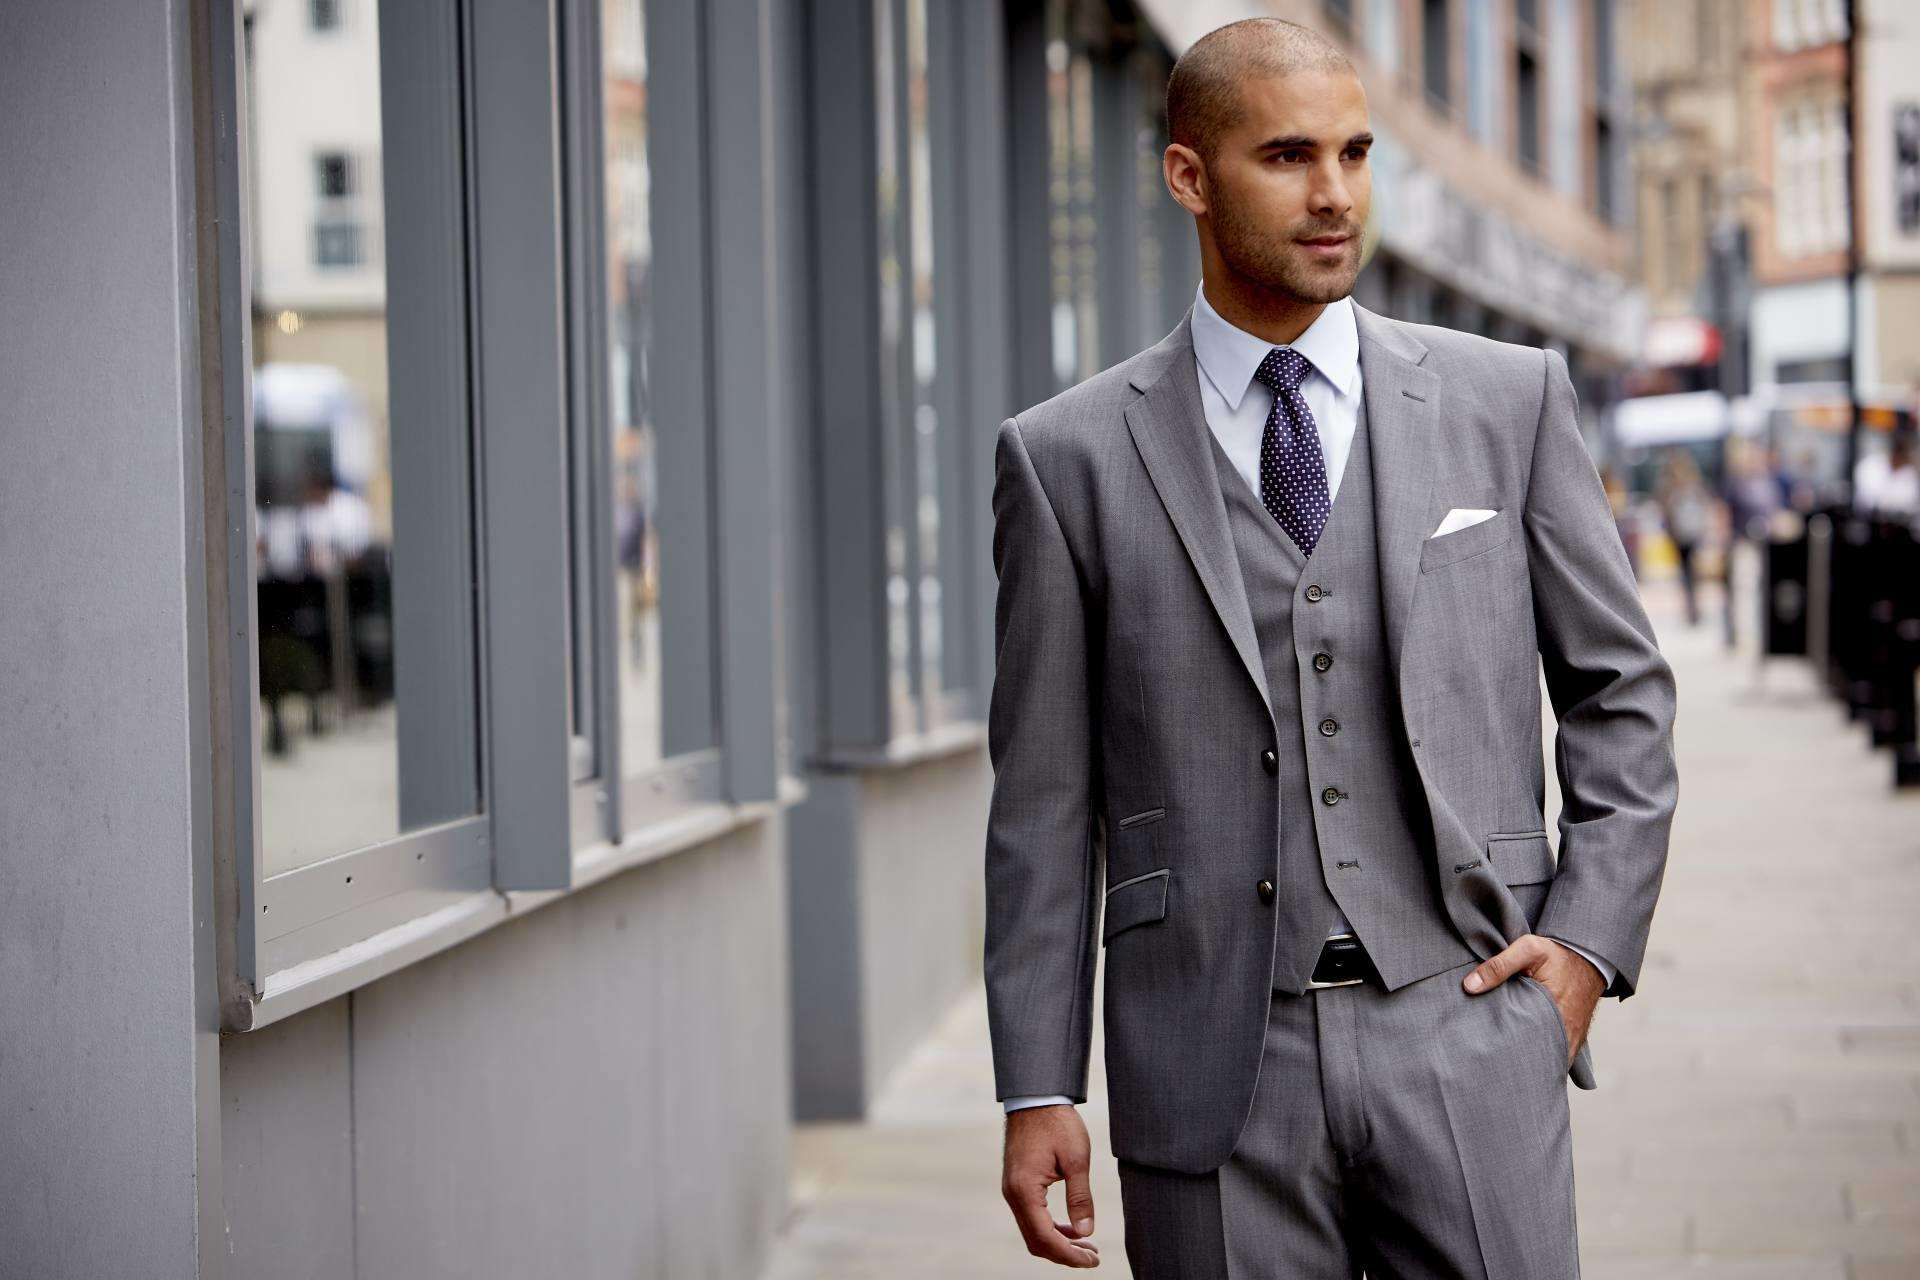 How to Look Sharp on the Train as a Working Dad PLUS Win an iPad with House of Fraser, Palmer Blue352%, lifestyle%